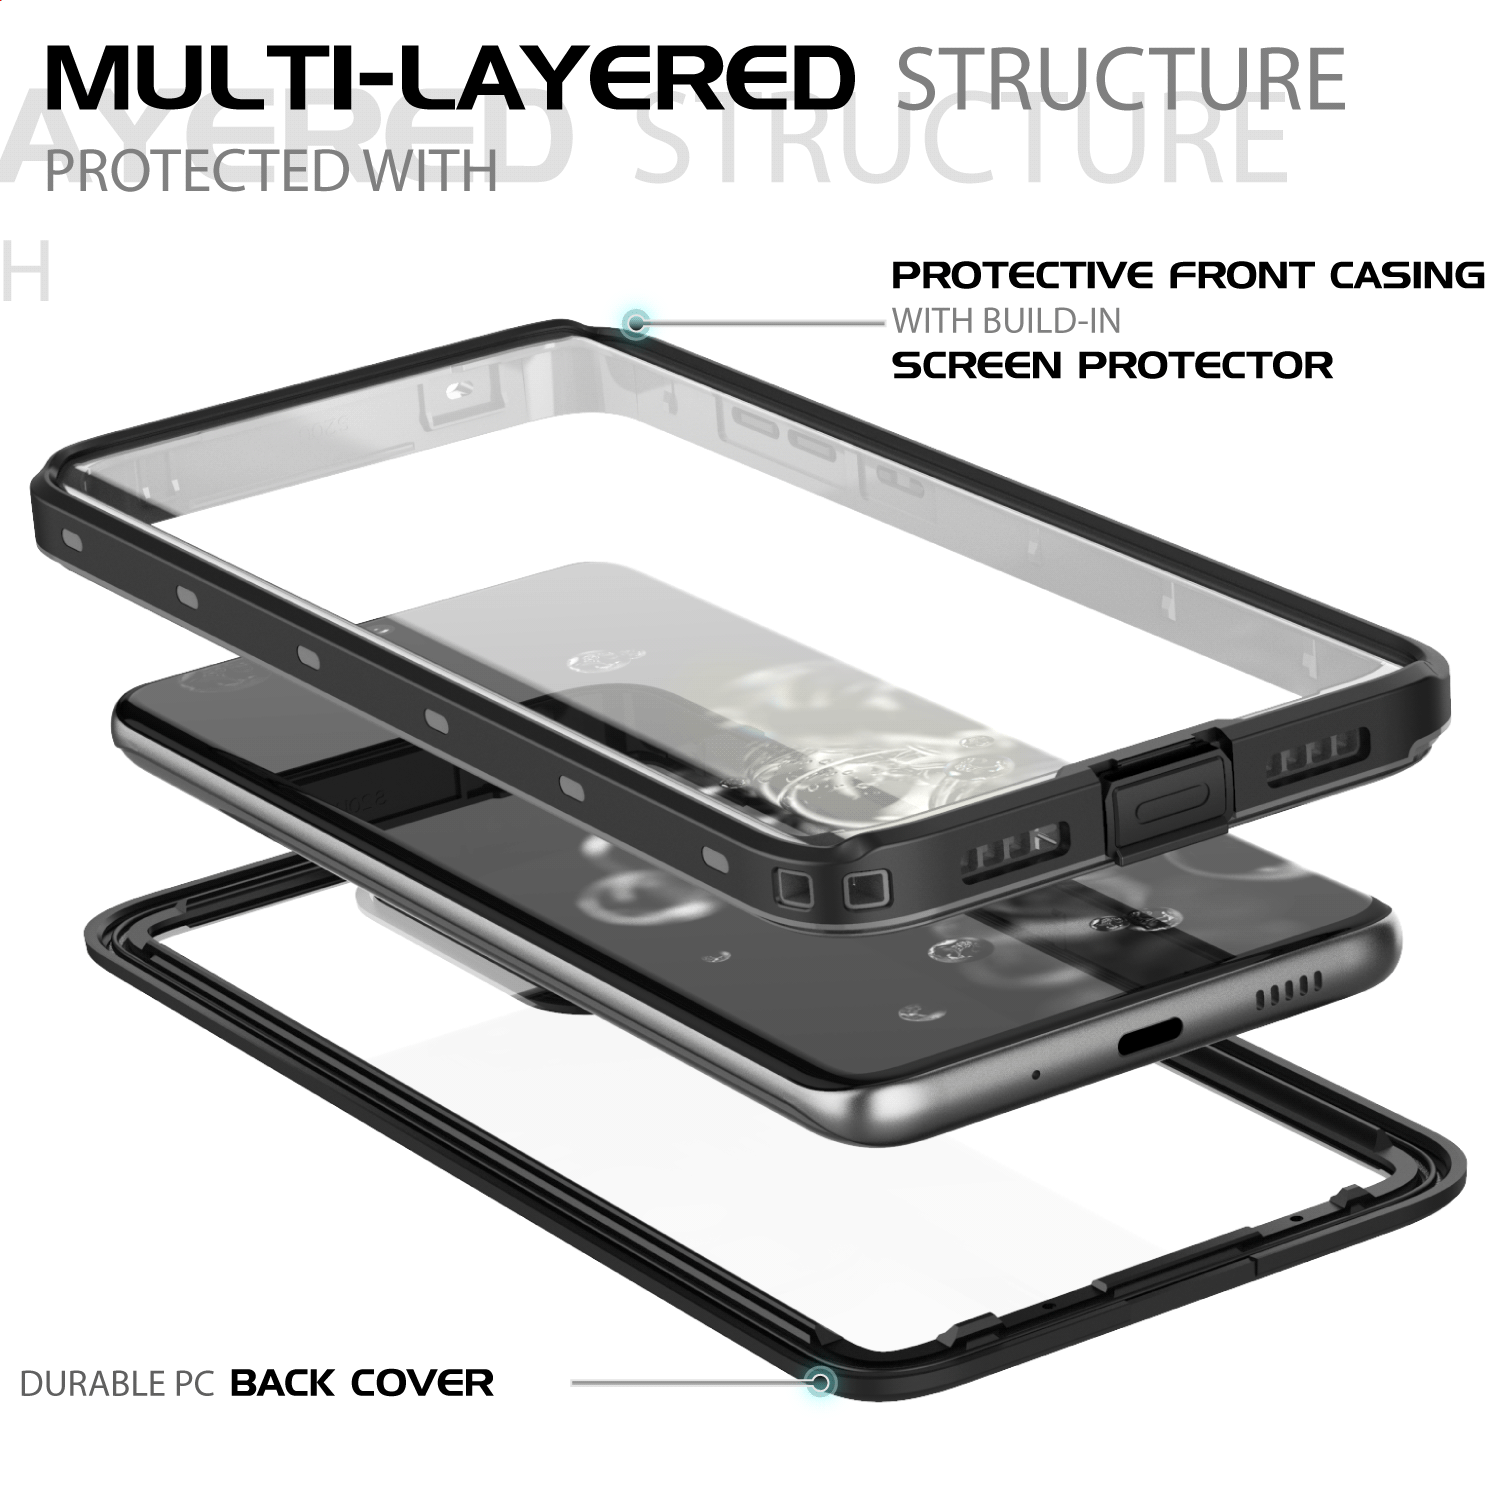 как выглядит For Samsung Galaxy S20 Plus S20 Ultra 5G Waterproof Case with Screen Protector фото